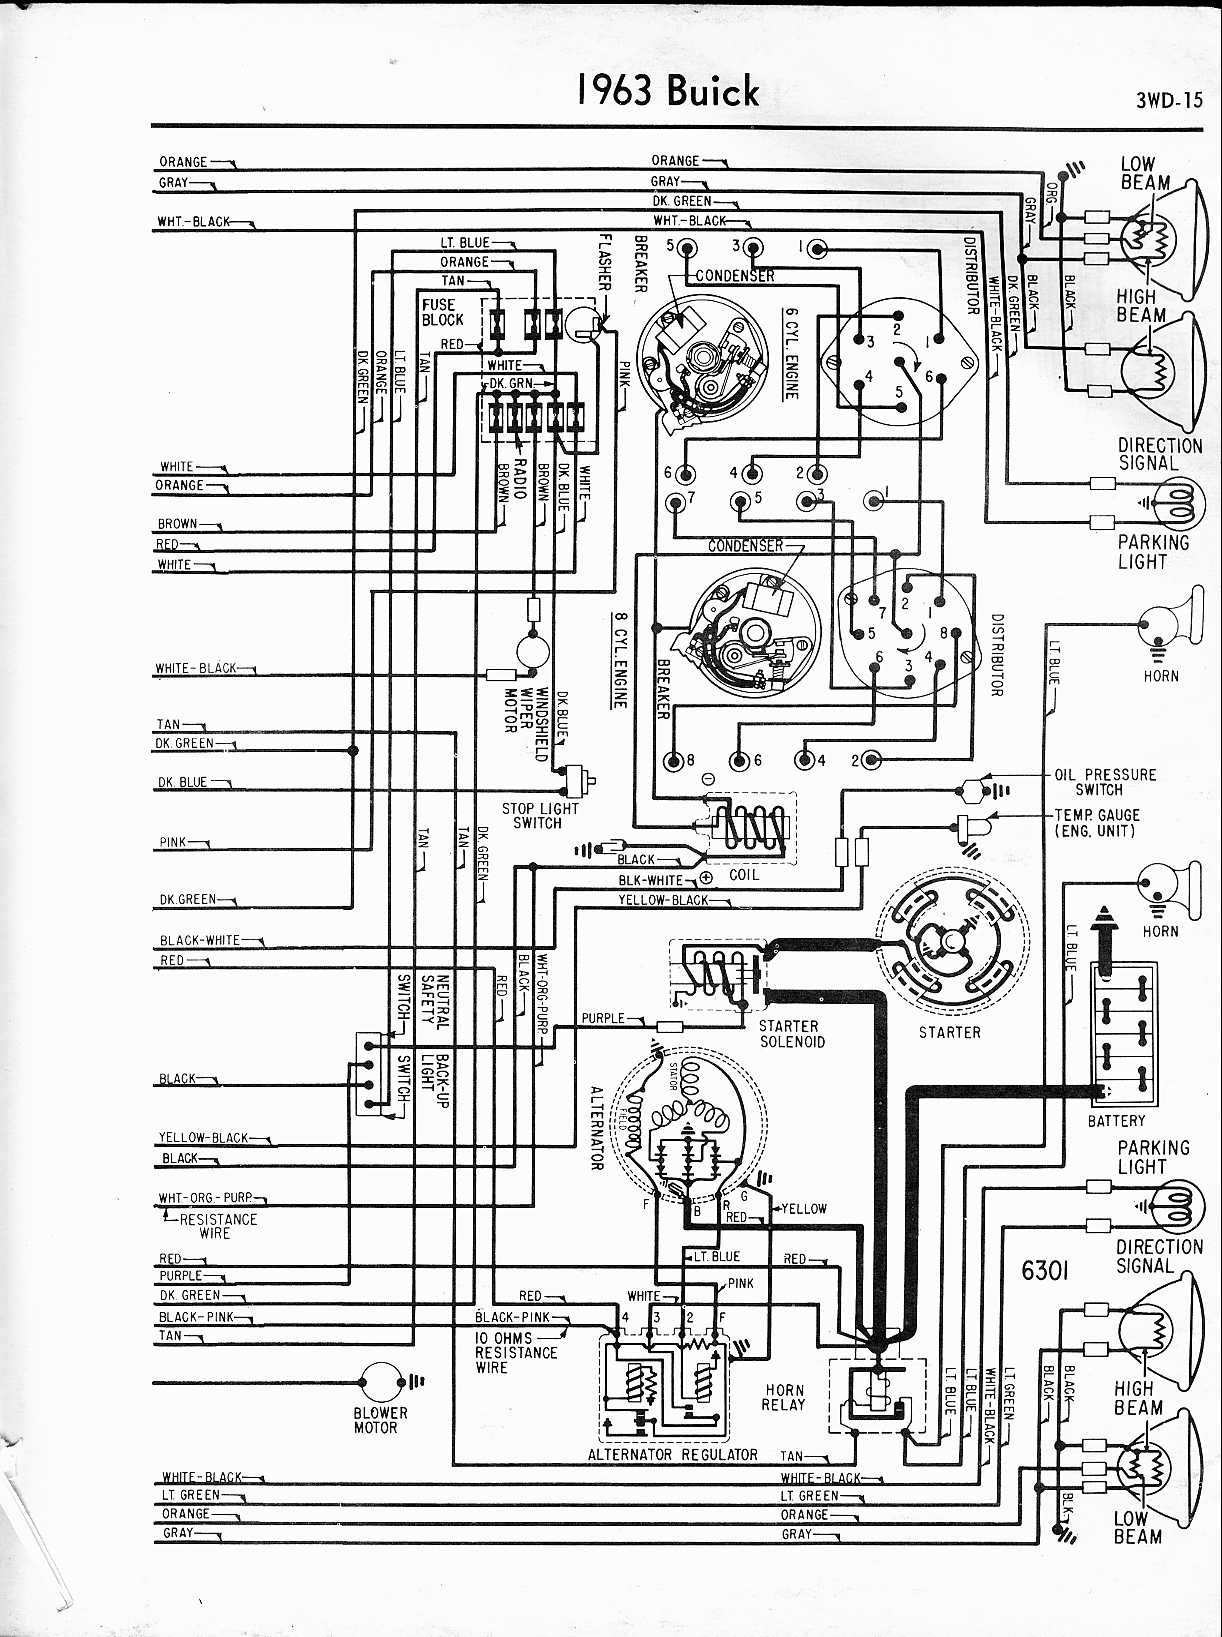 68 satellite wiring diagram 68 buick wiring diagram